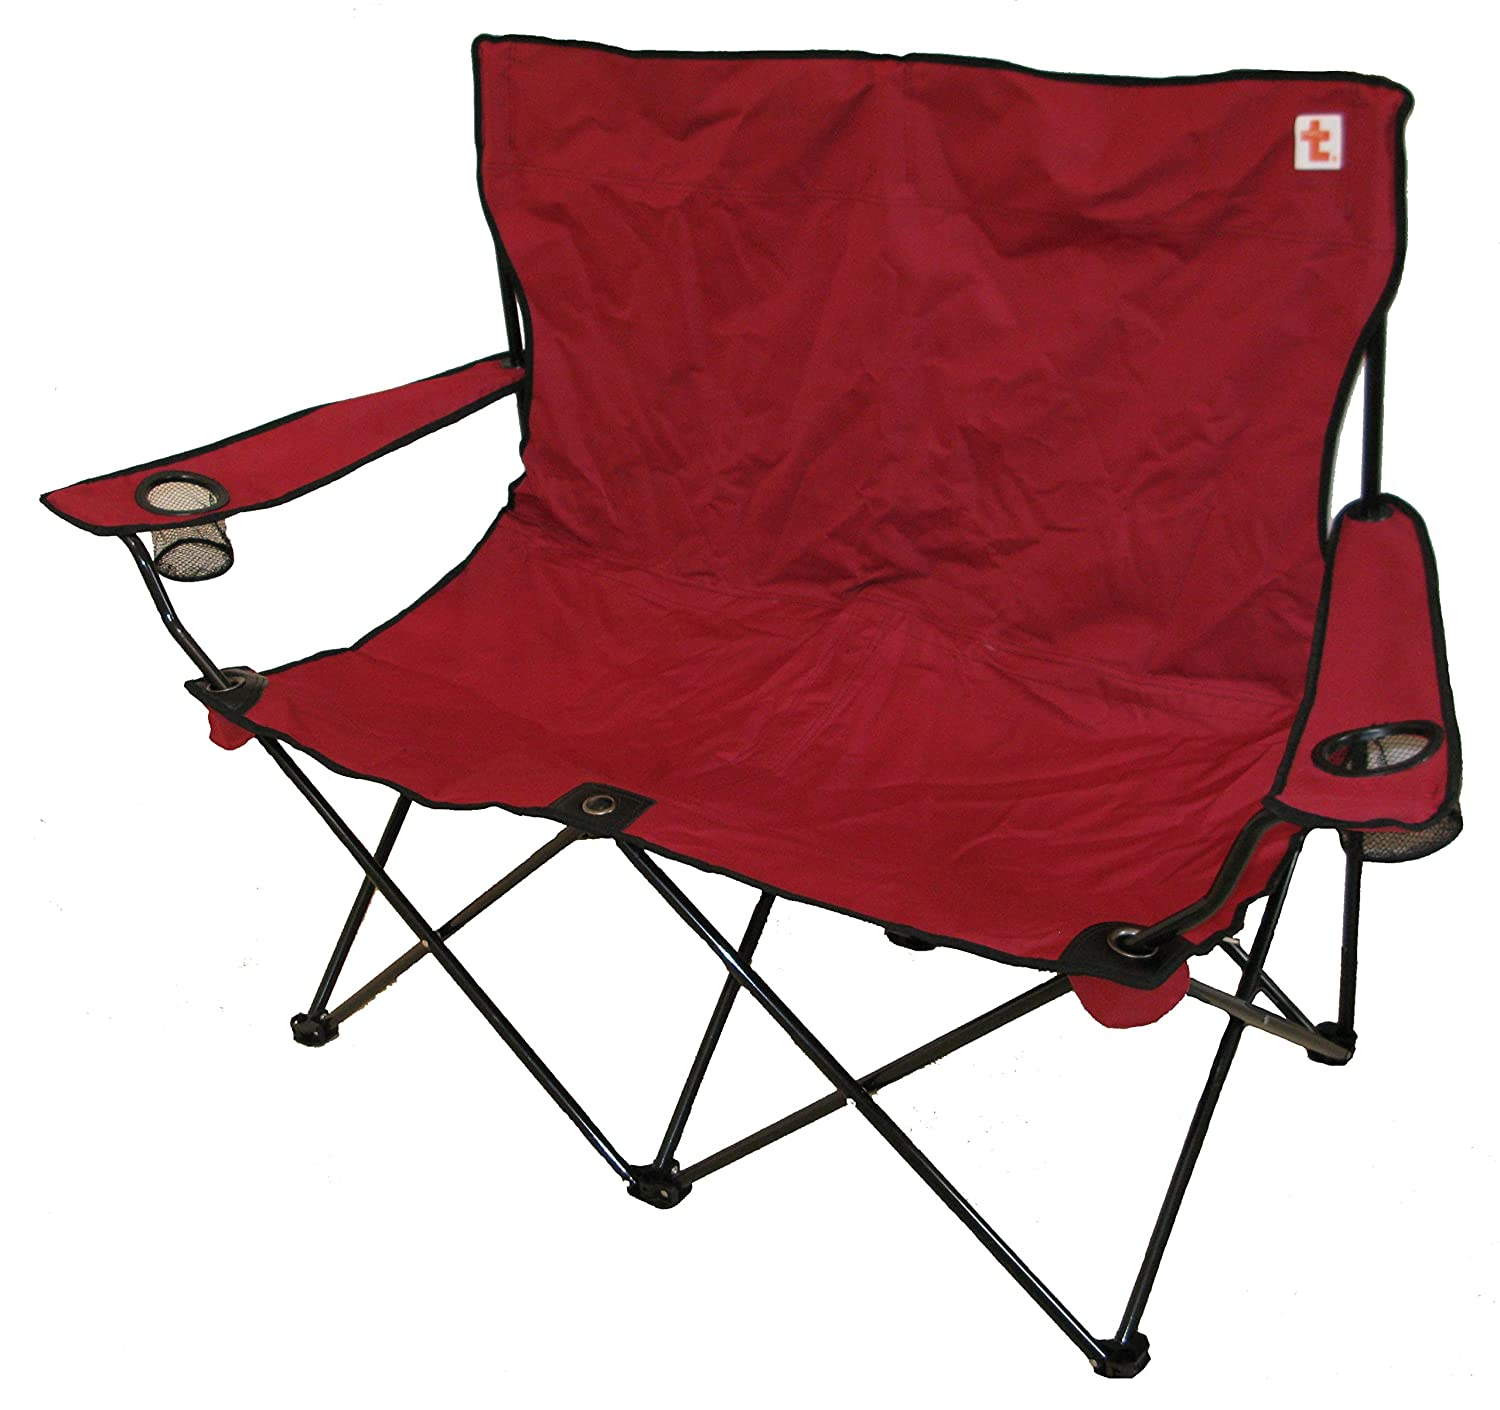 Double Folding Camping Chair Big Strong Navy Amazon